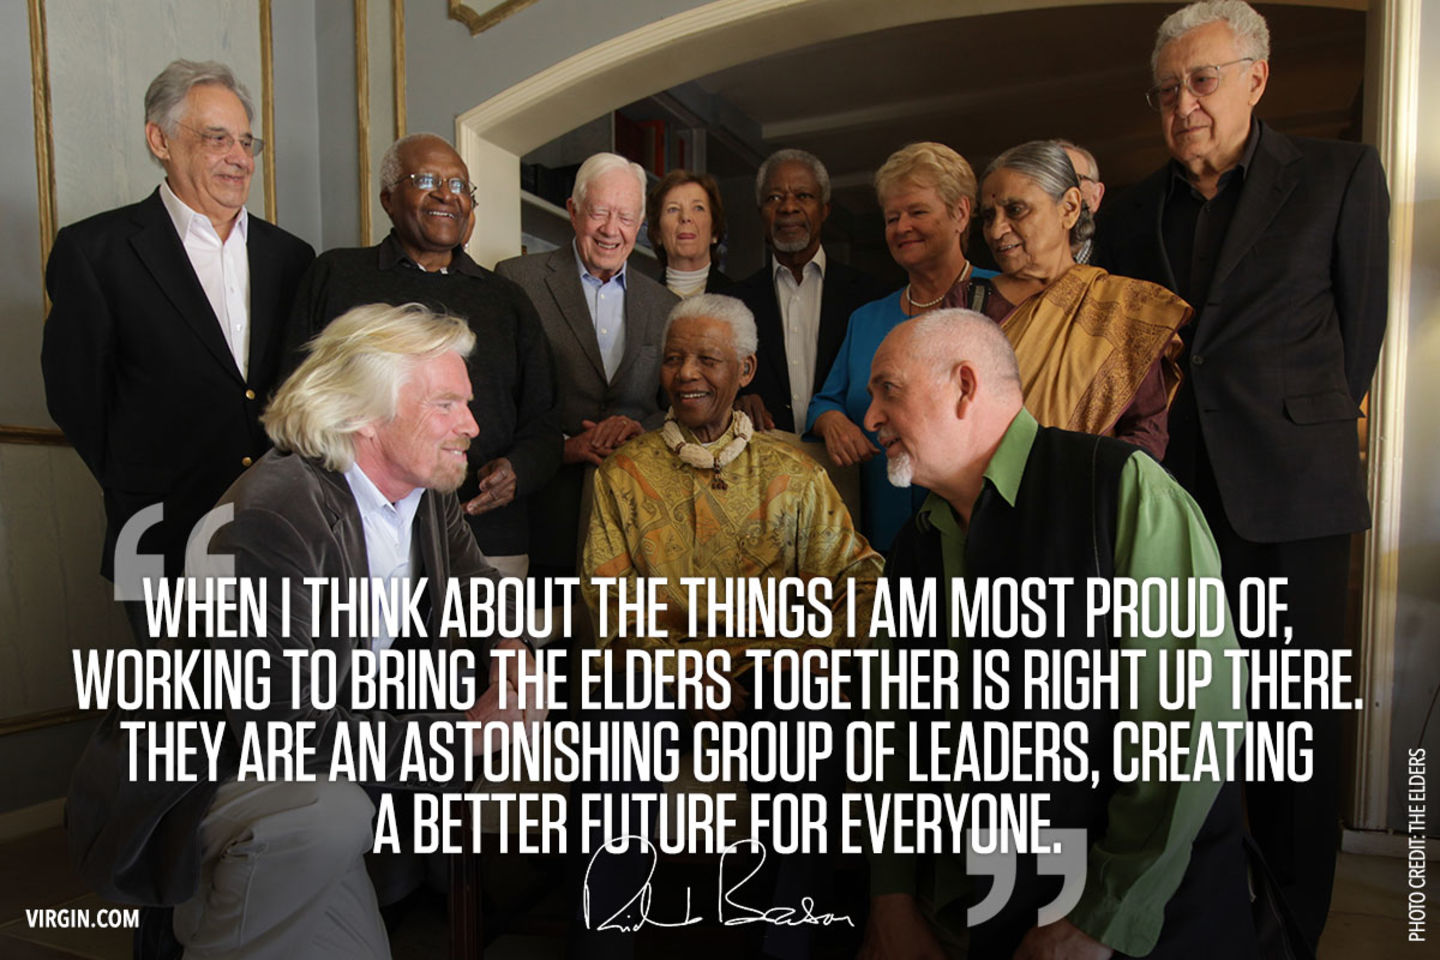 """When i think about things i am most proud of, working to bring the elders together is right up there,. They are an astonishing group of leaders, creating a better future for everyone"" quote on the background the elders with Richard Branson"